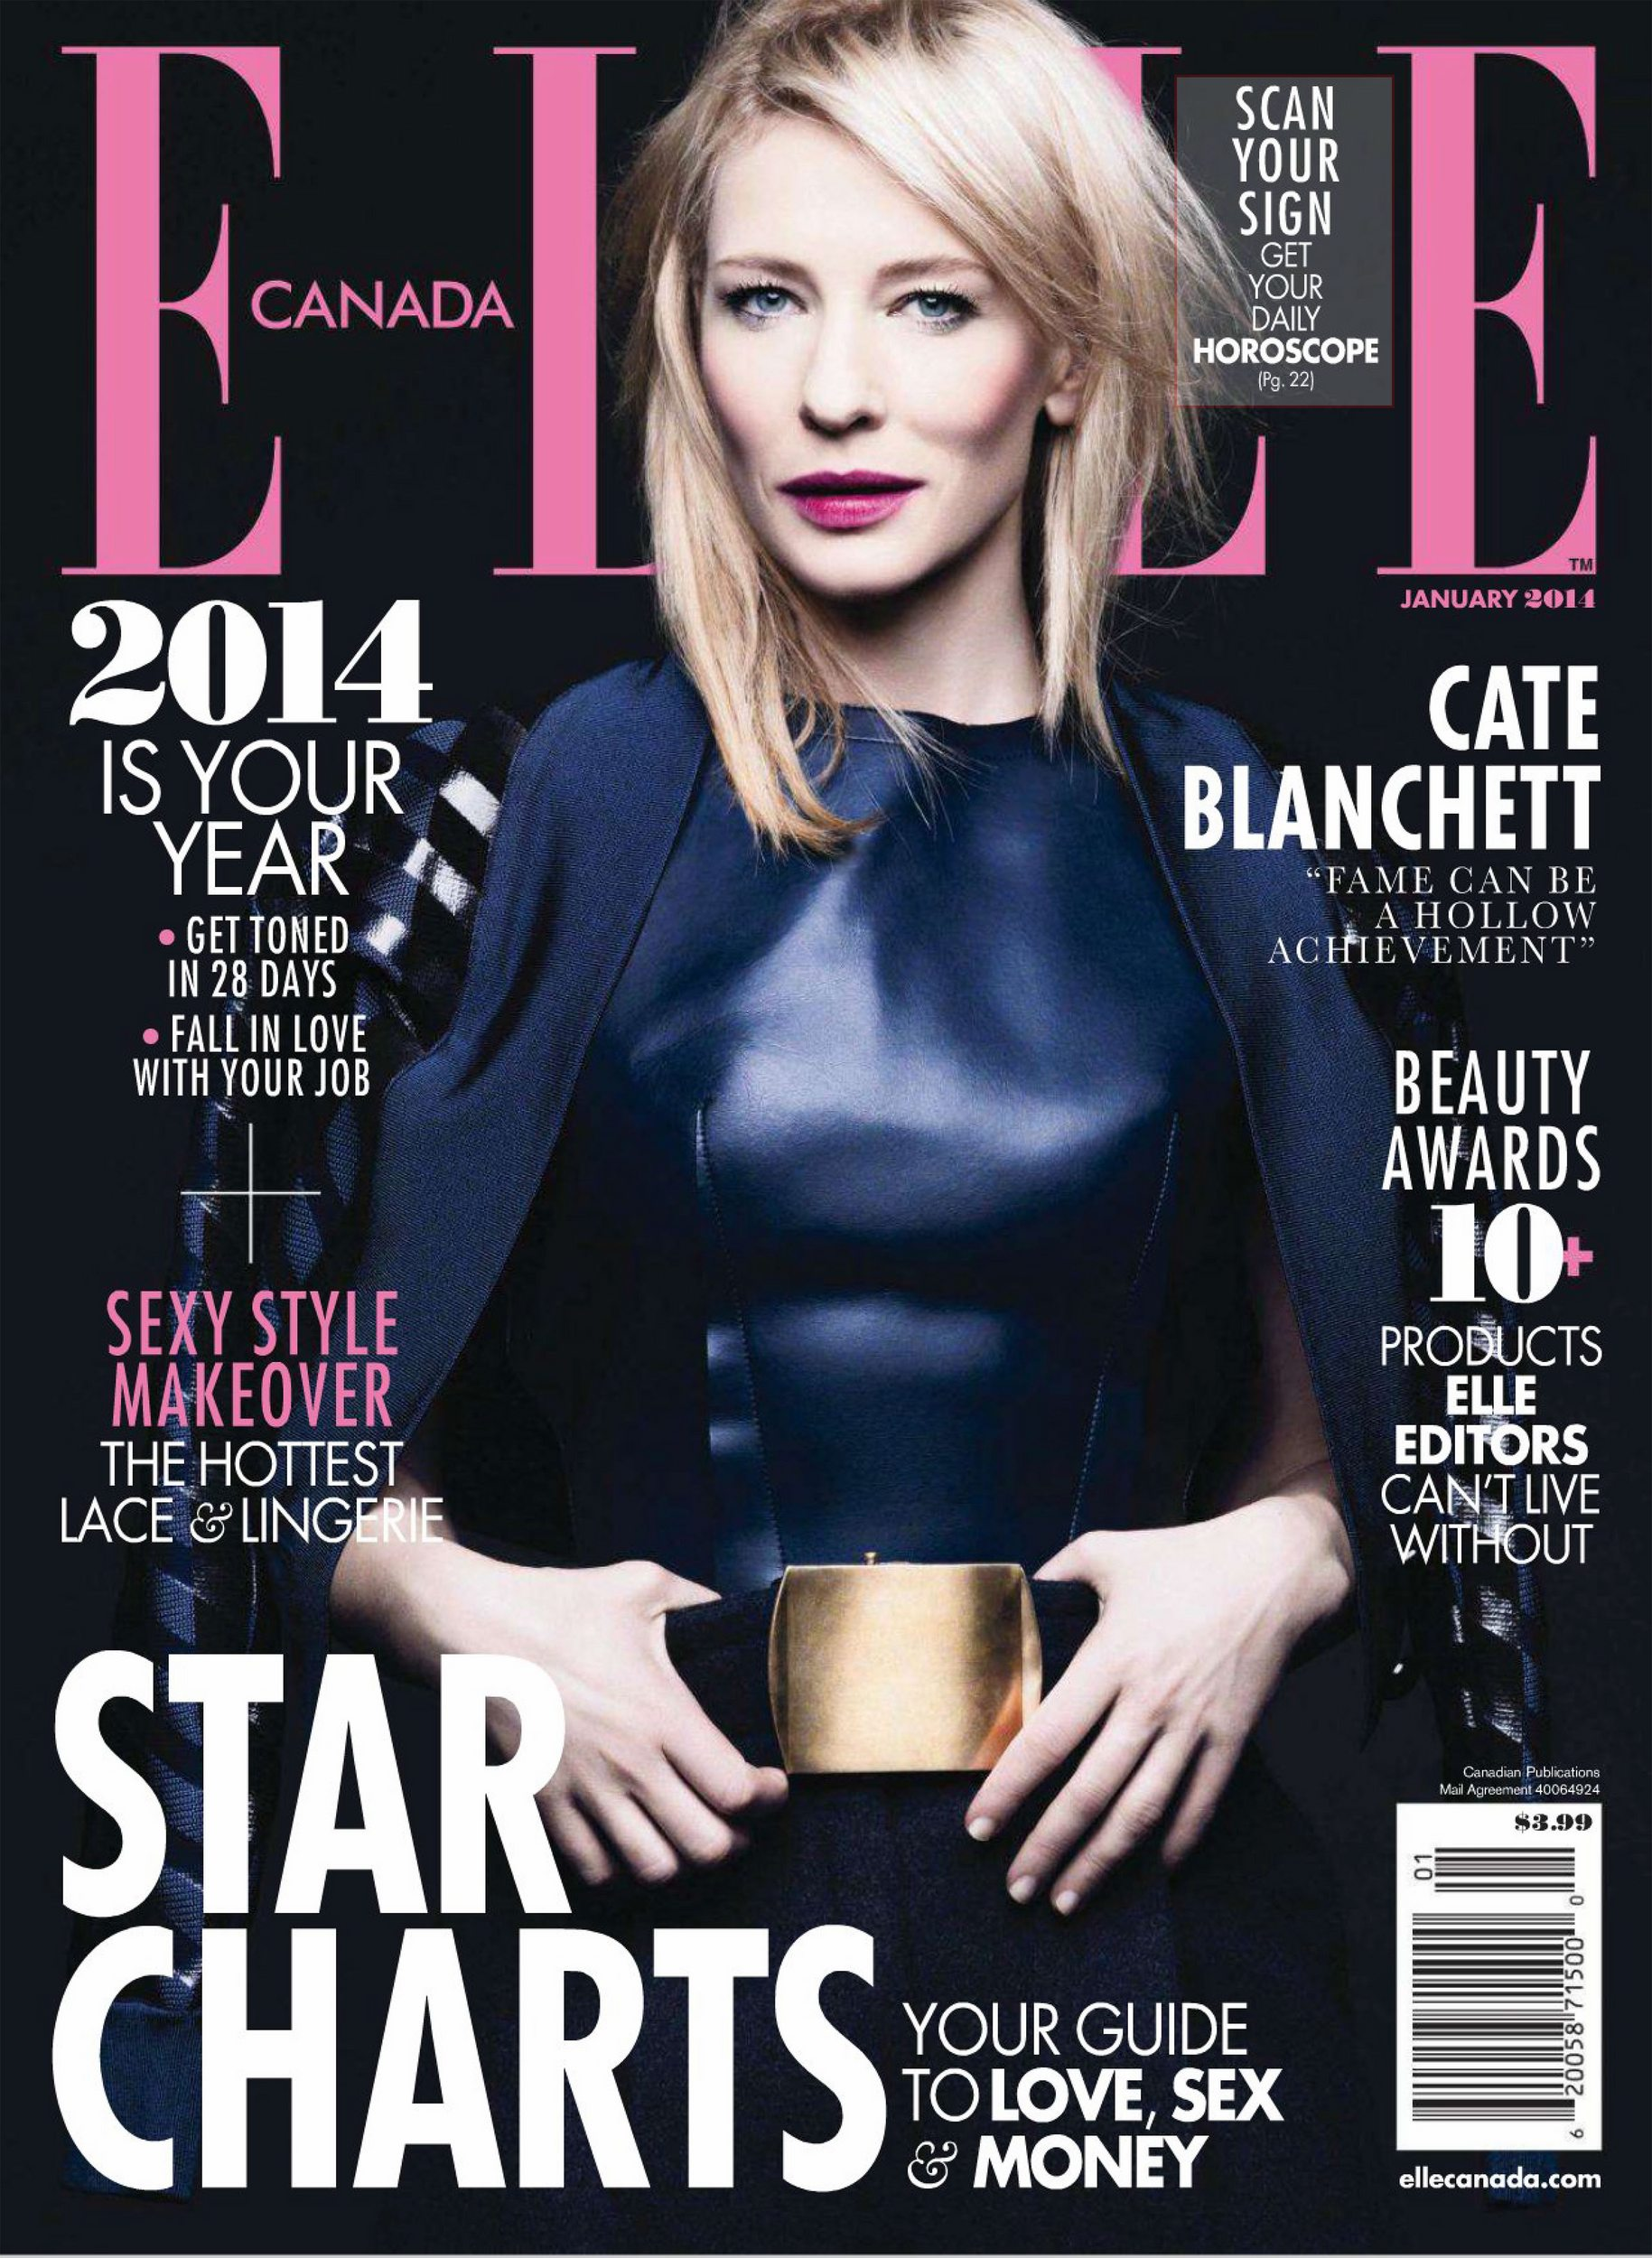 Elle Canada January 2014 Scans